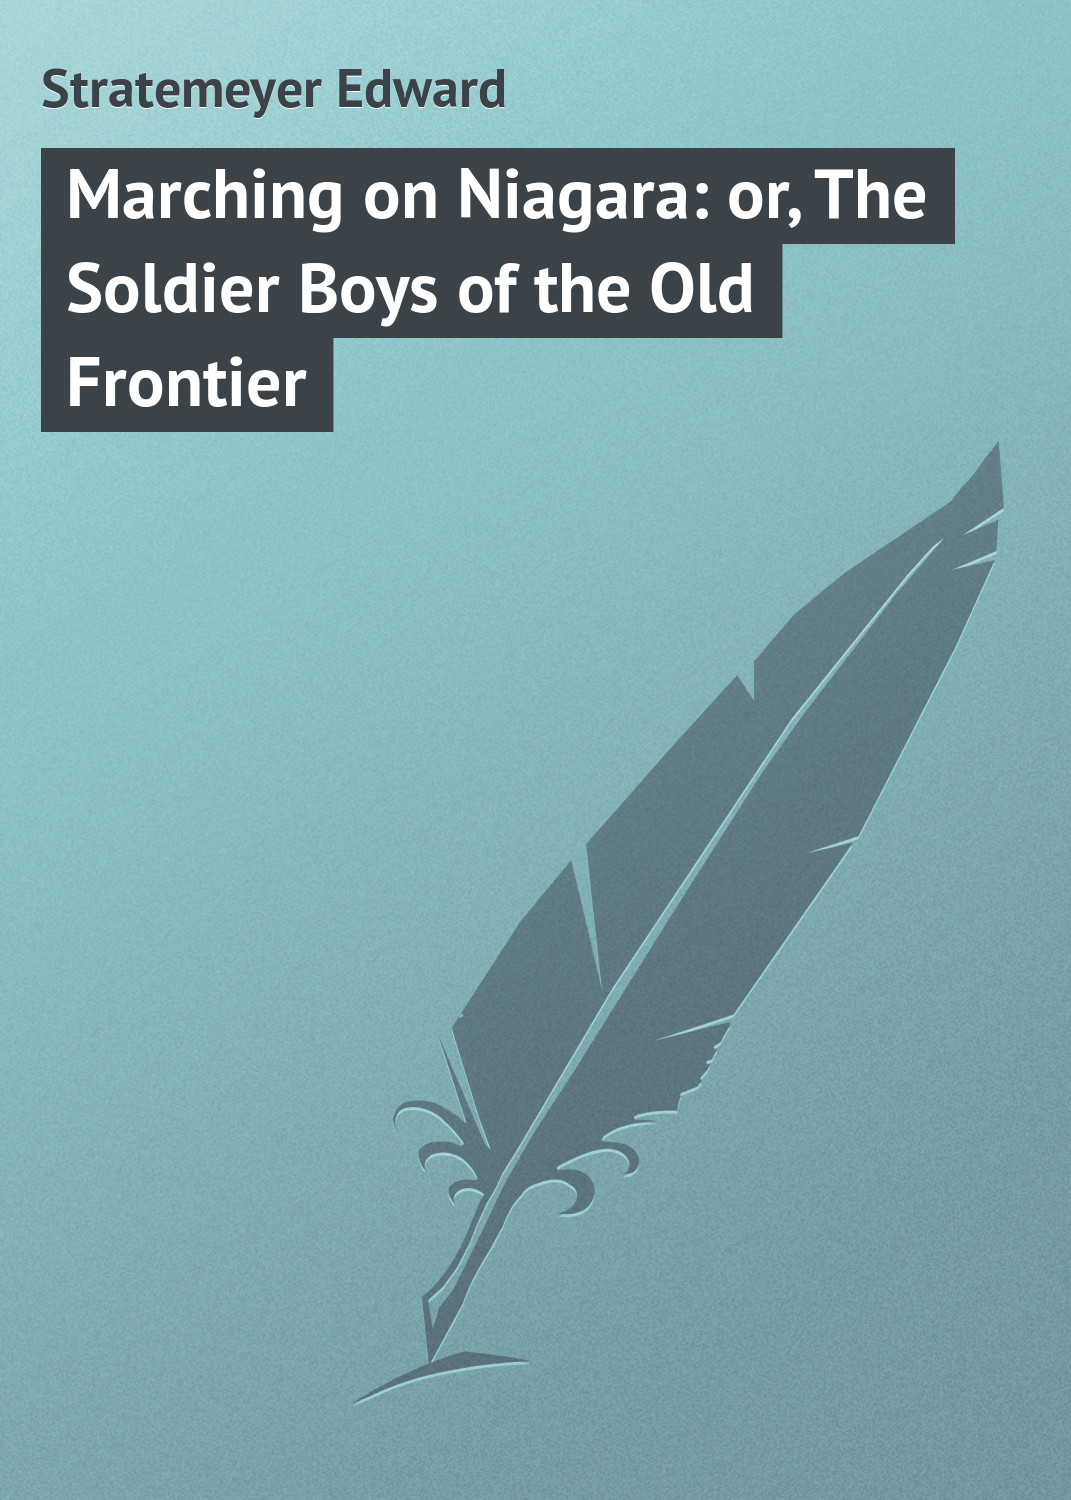 купить Stratemeyer Edward Marching on Niagara: or, The Soldier Boys of the Old Frontier